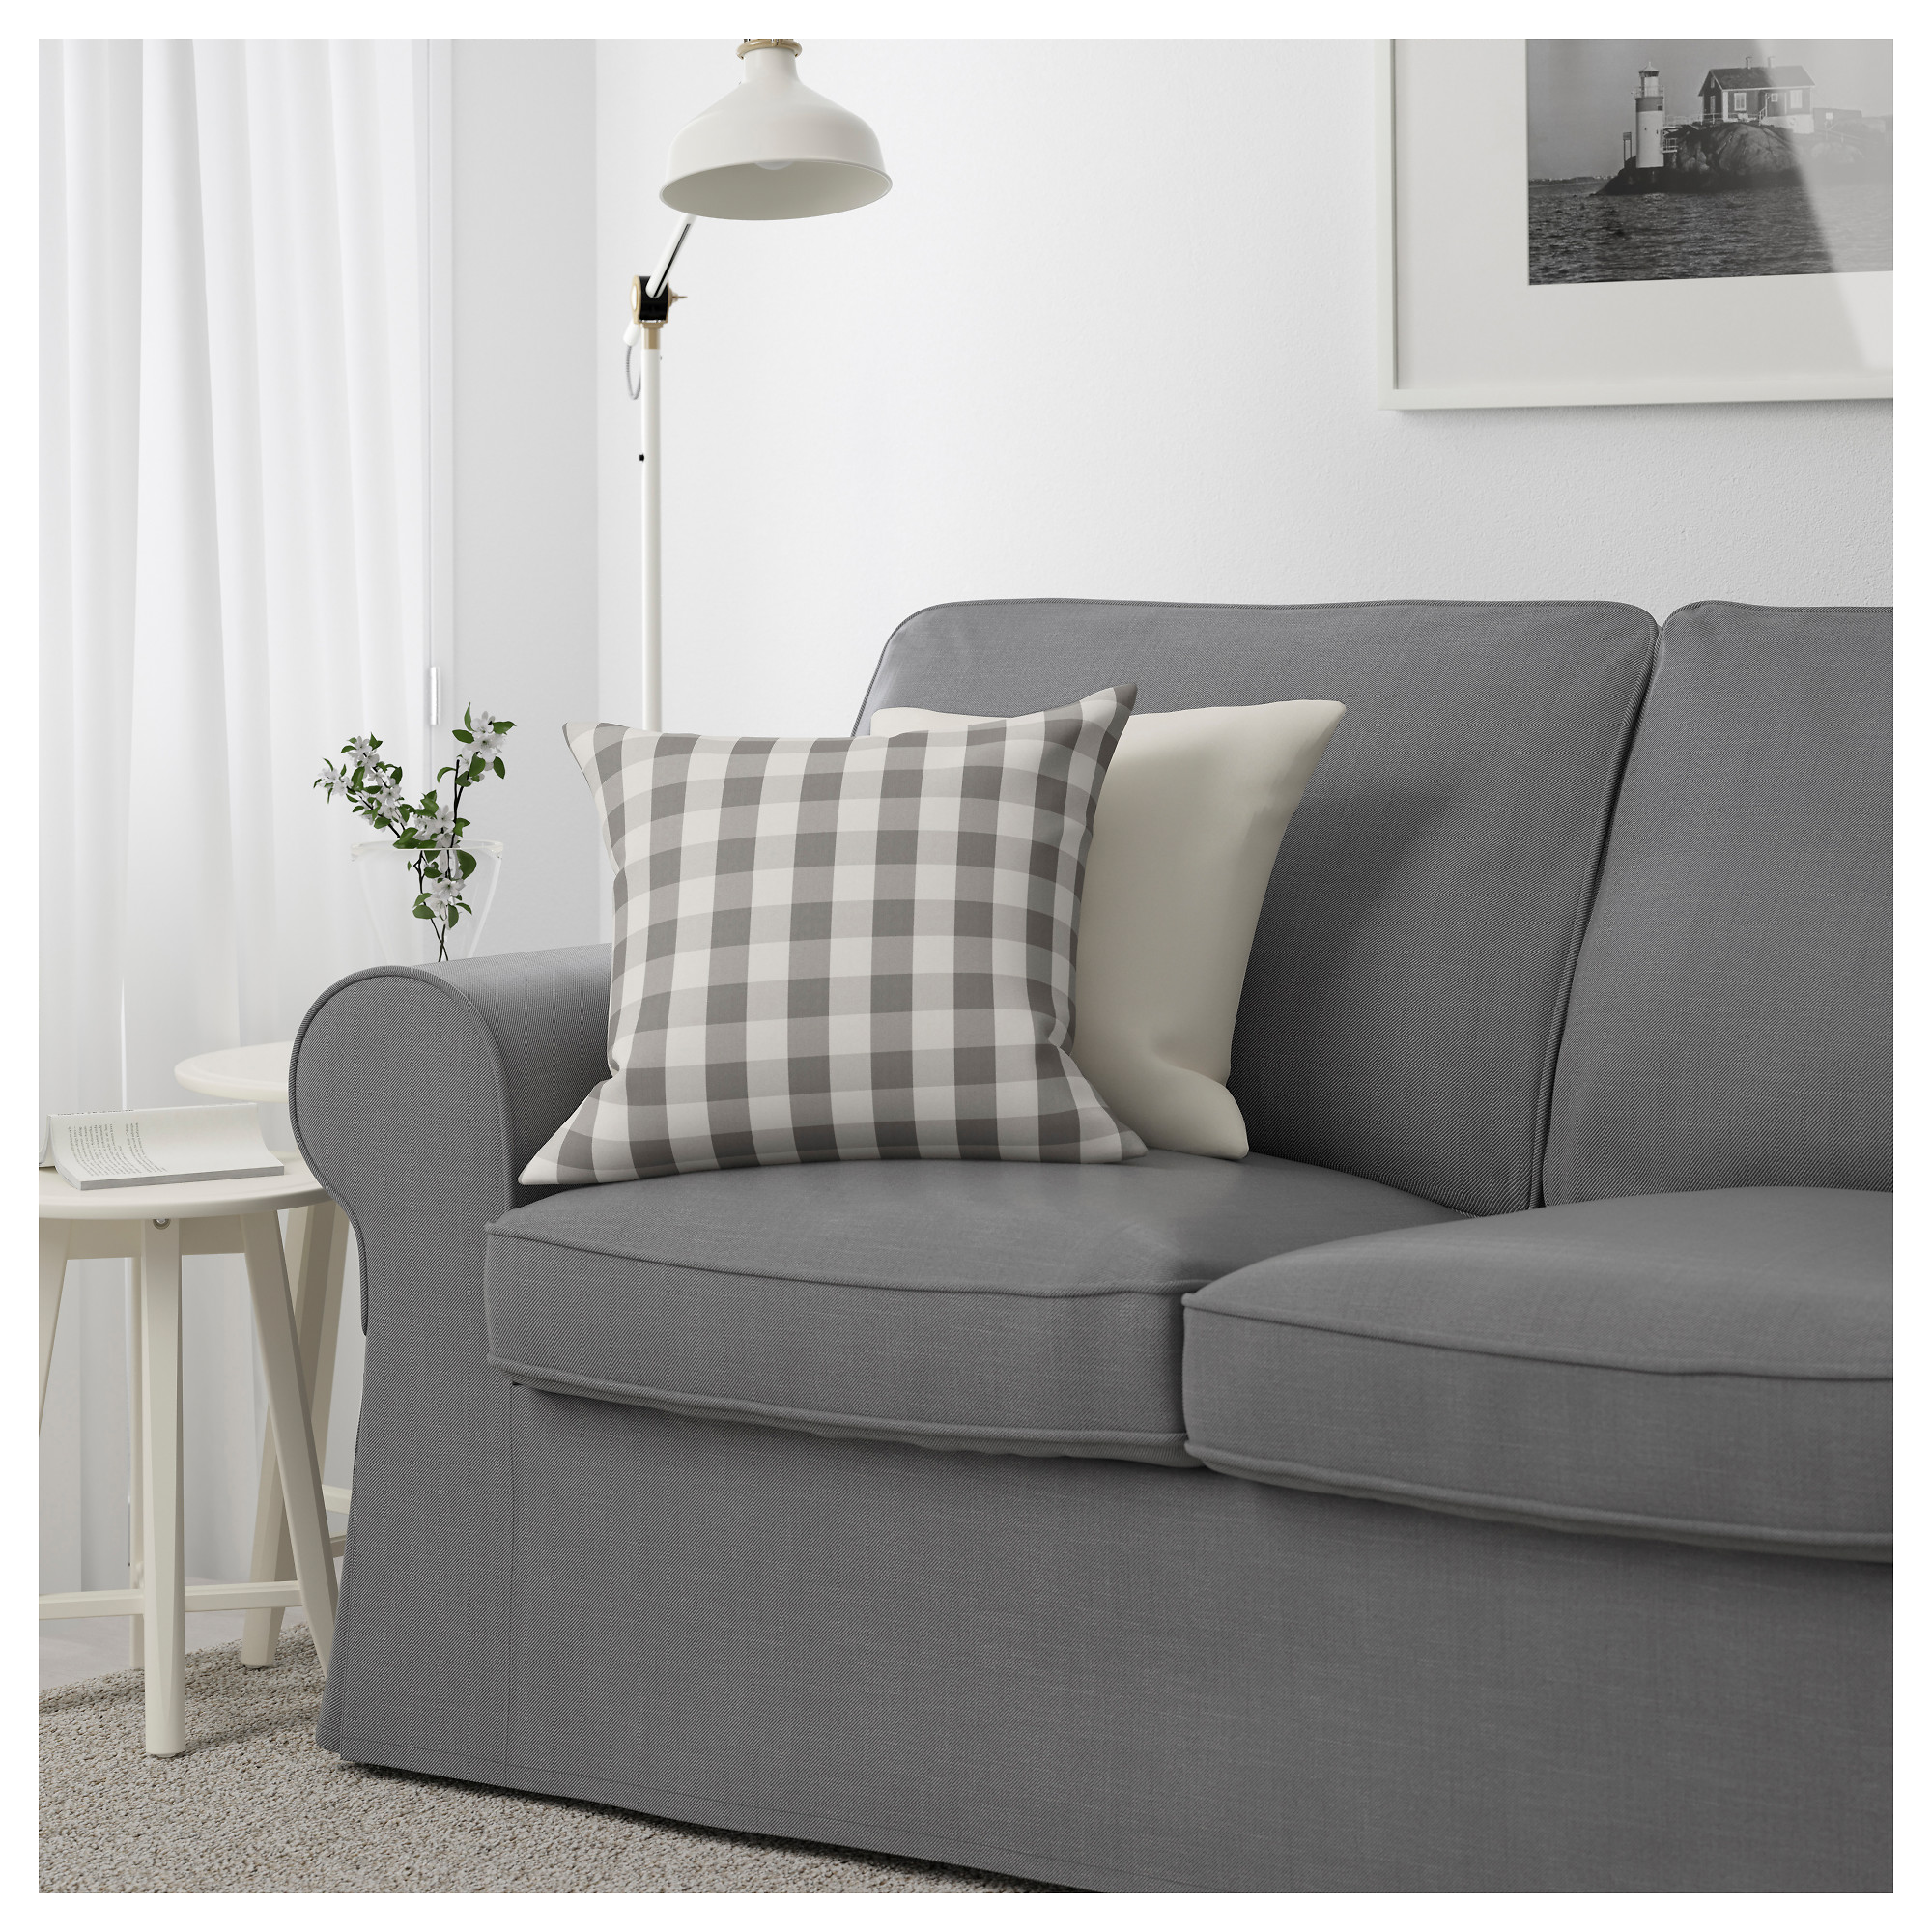 ideal fold pull near outfa size of interior full sale mecheap cheap home for guestuthbaynorton sofa bed beds loveseat design out